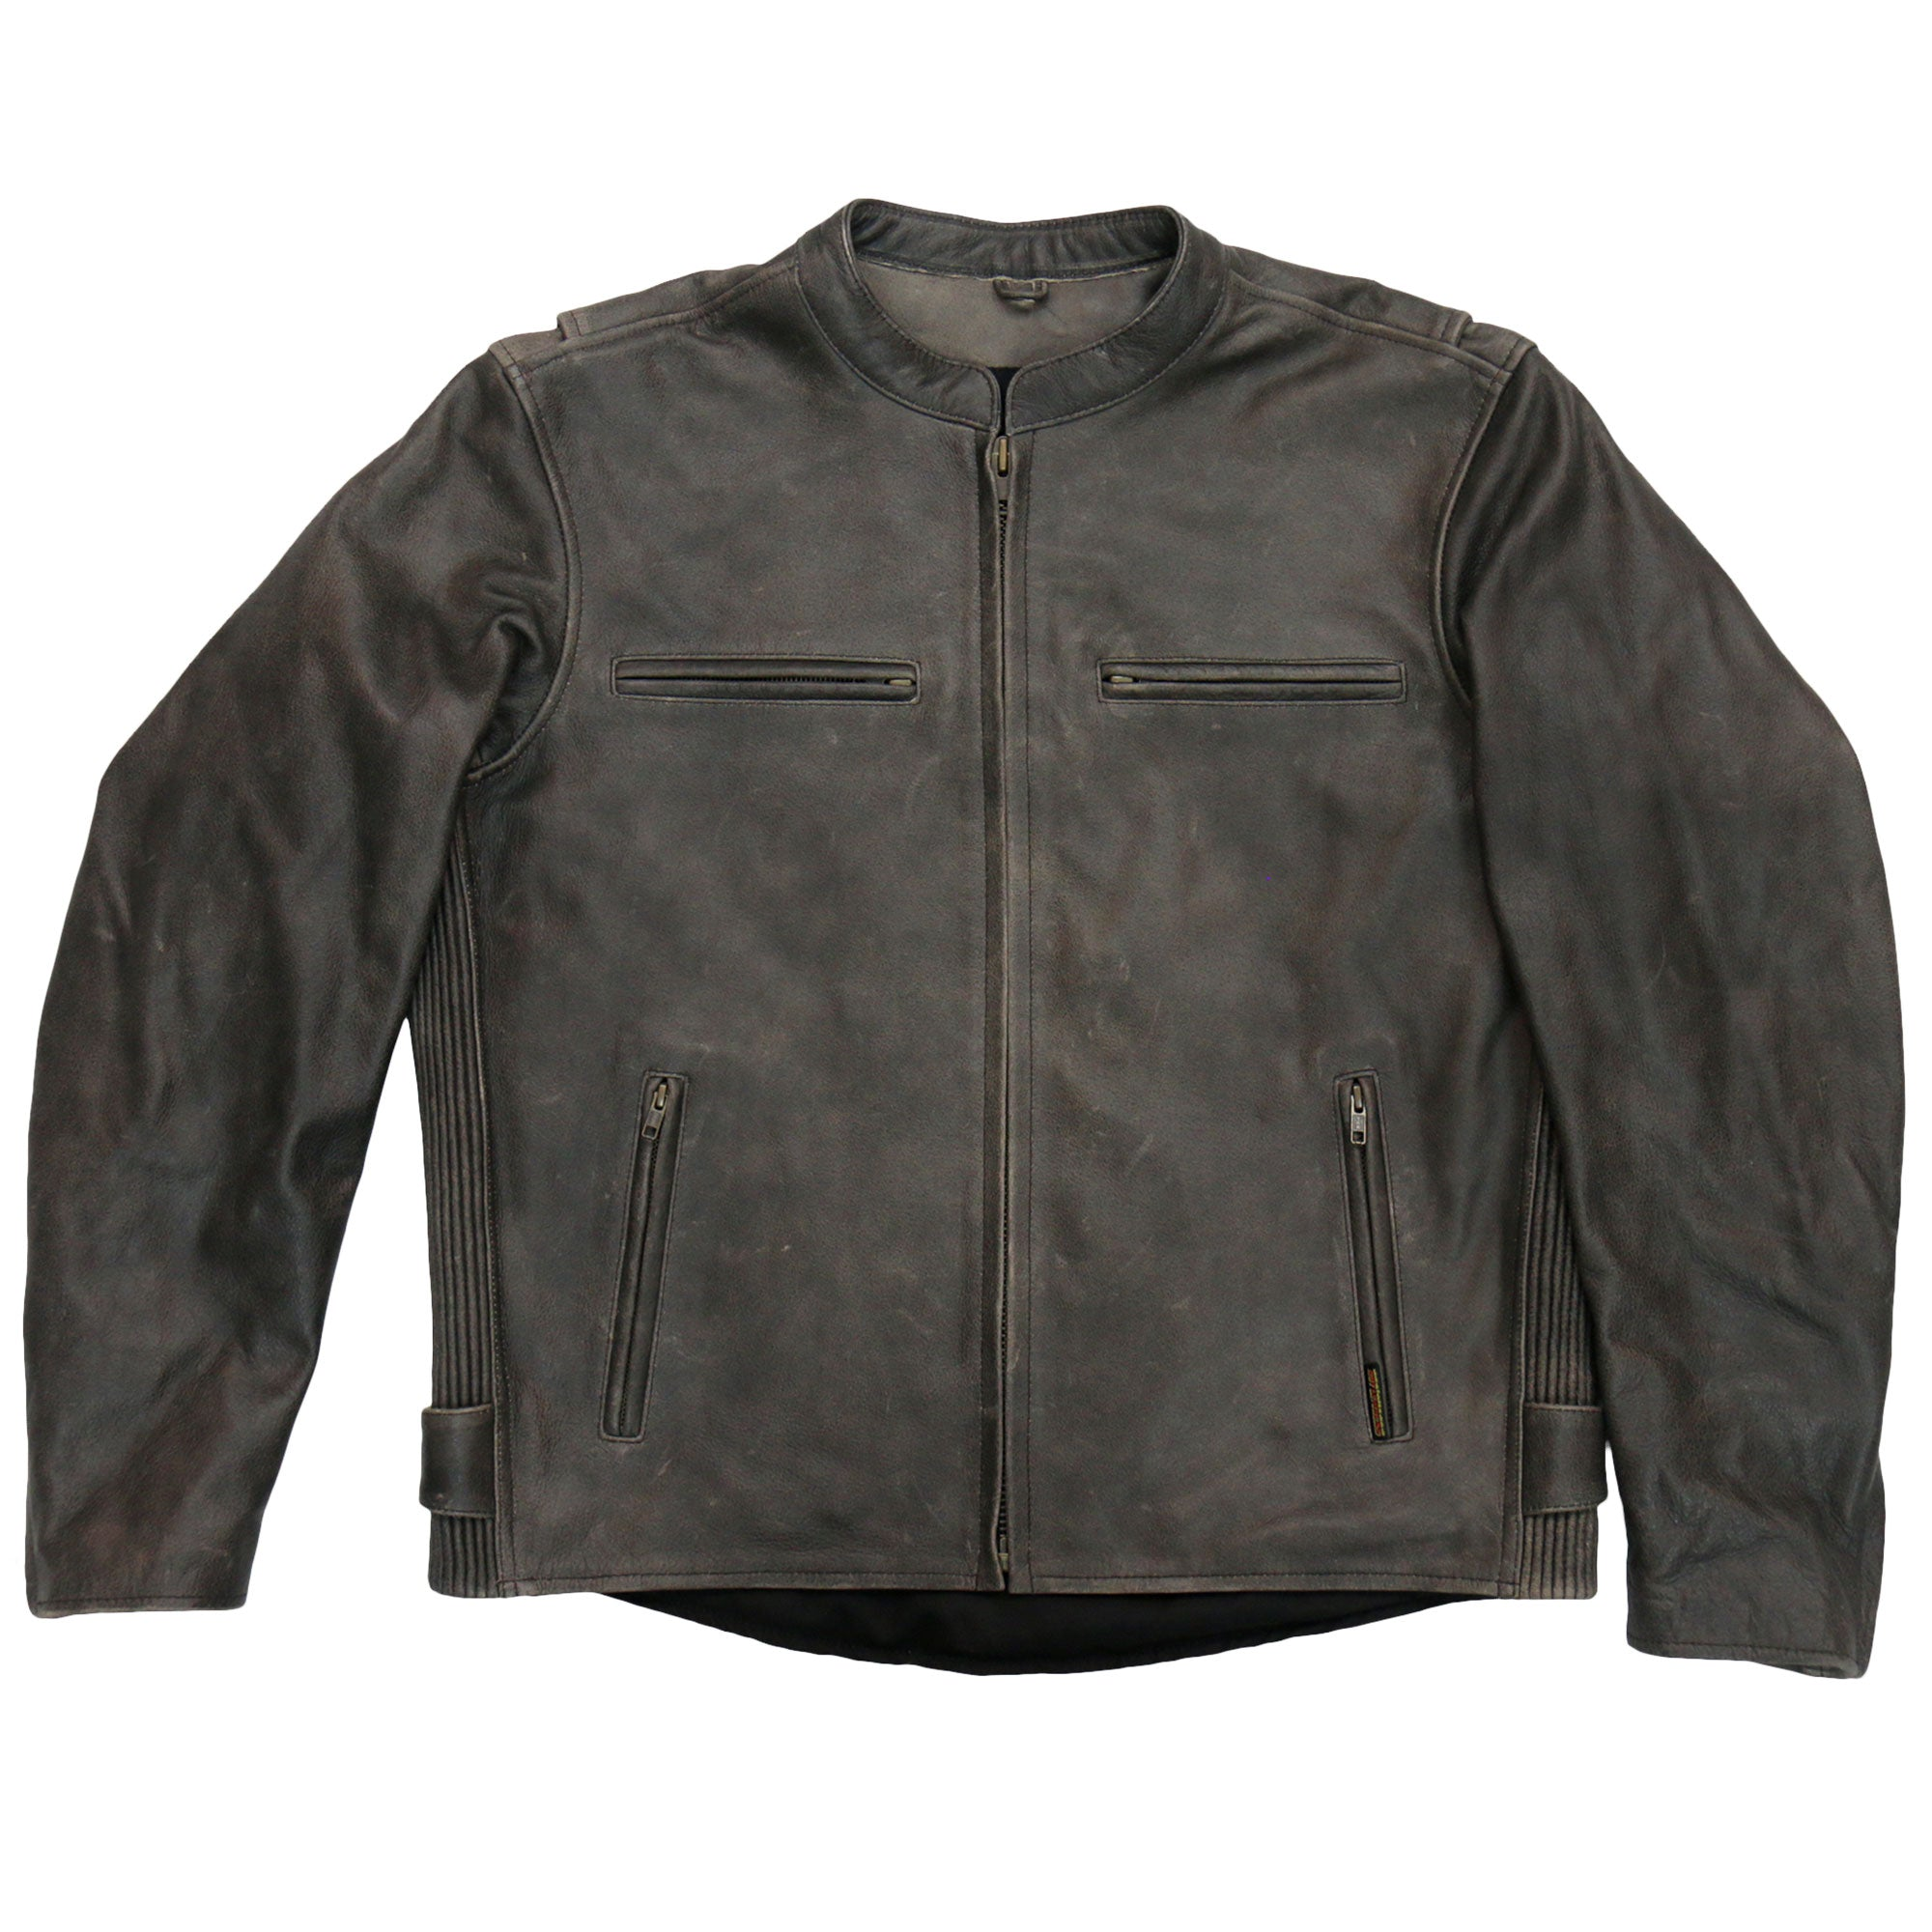 Hot Leathers Mens Brown Leather Jacket w/ Armor and Concealed Carry Pockets